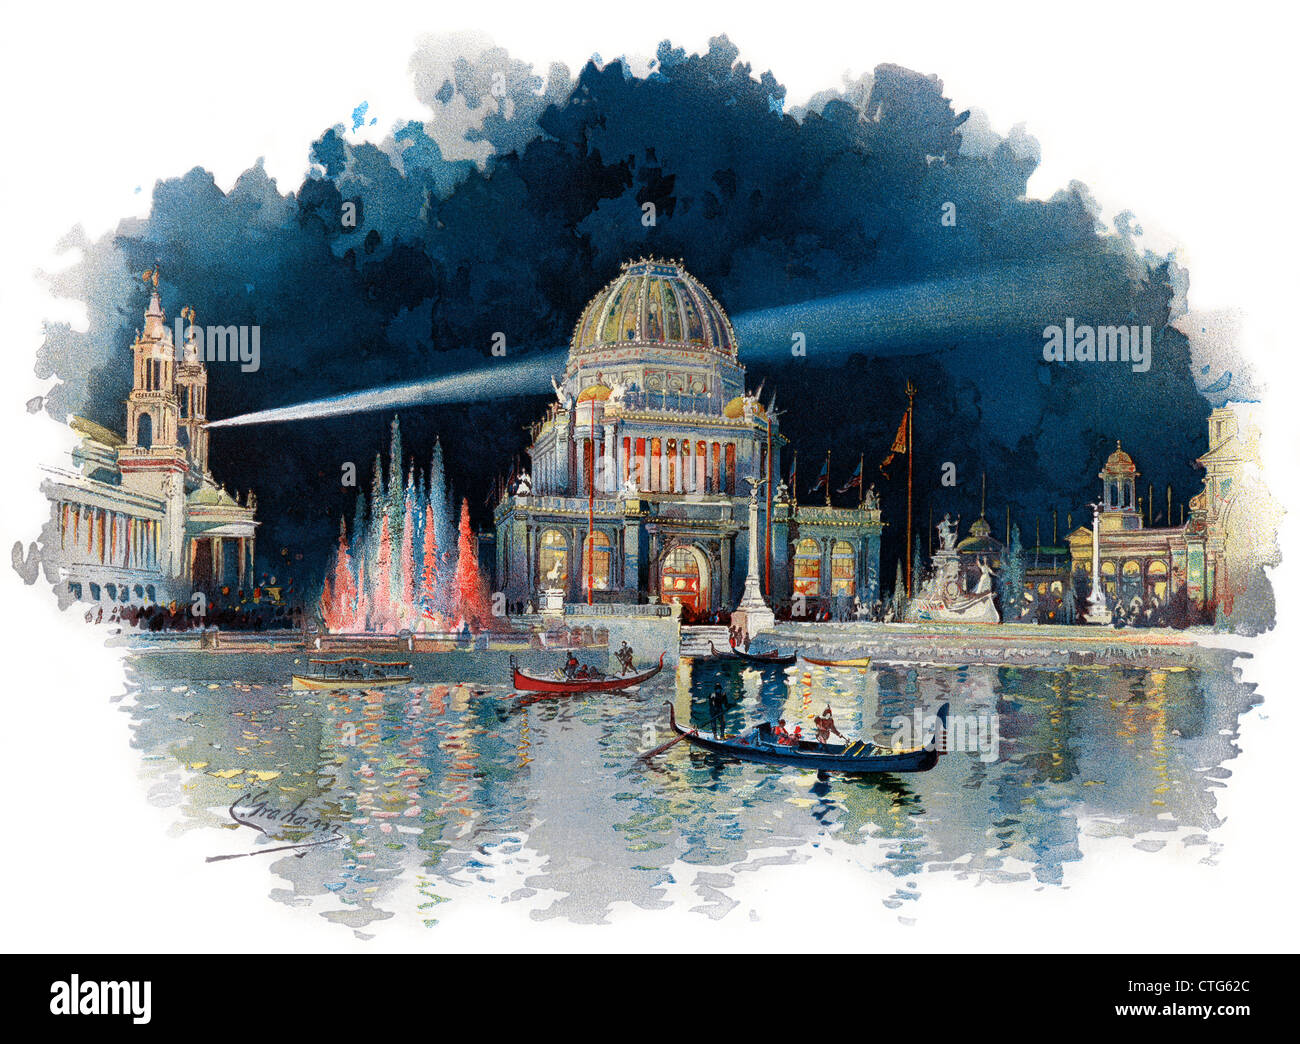 1890s NIGHT IN GRAND COURT OF WORLD COLUMBIAN EXPOSITION KNOWN AS CHICAGO WORLD'S FAIR BEAUX ARTS ARCHITECTURE - Stock Image